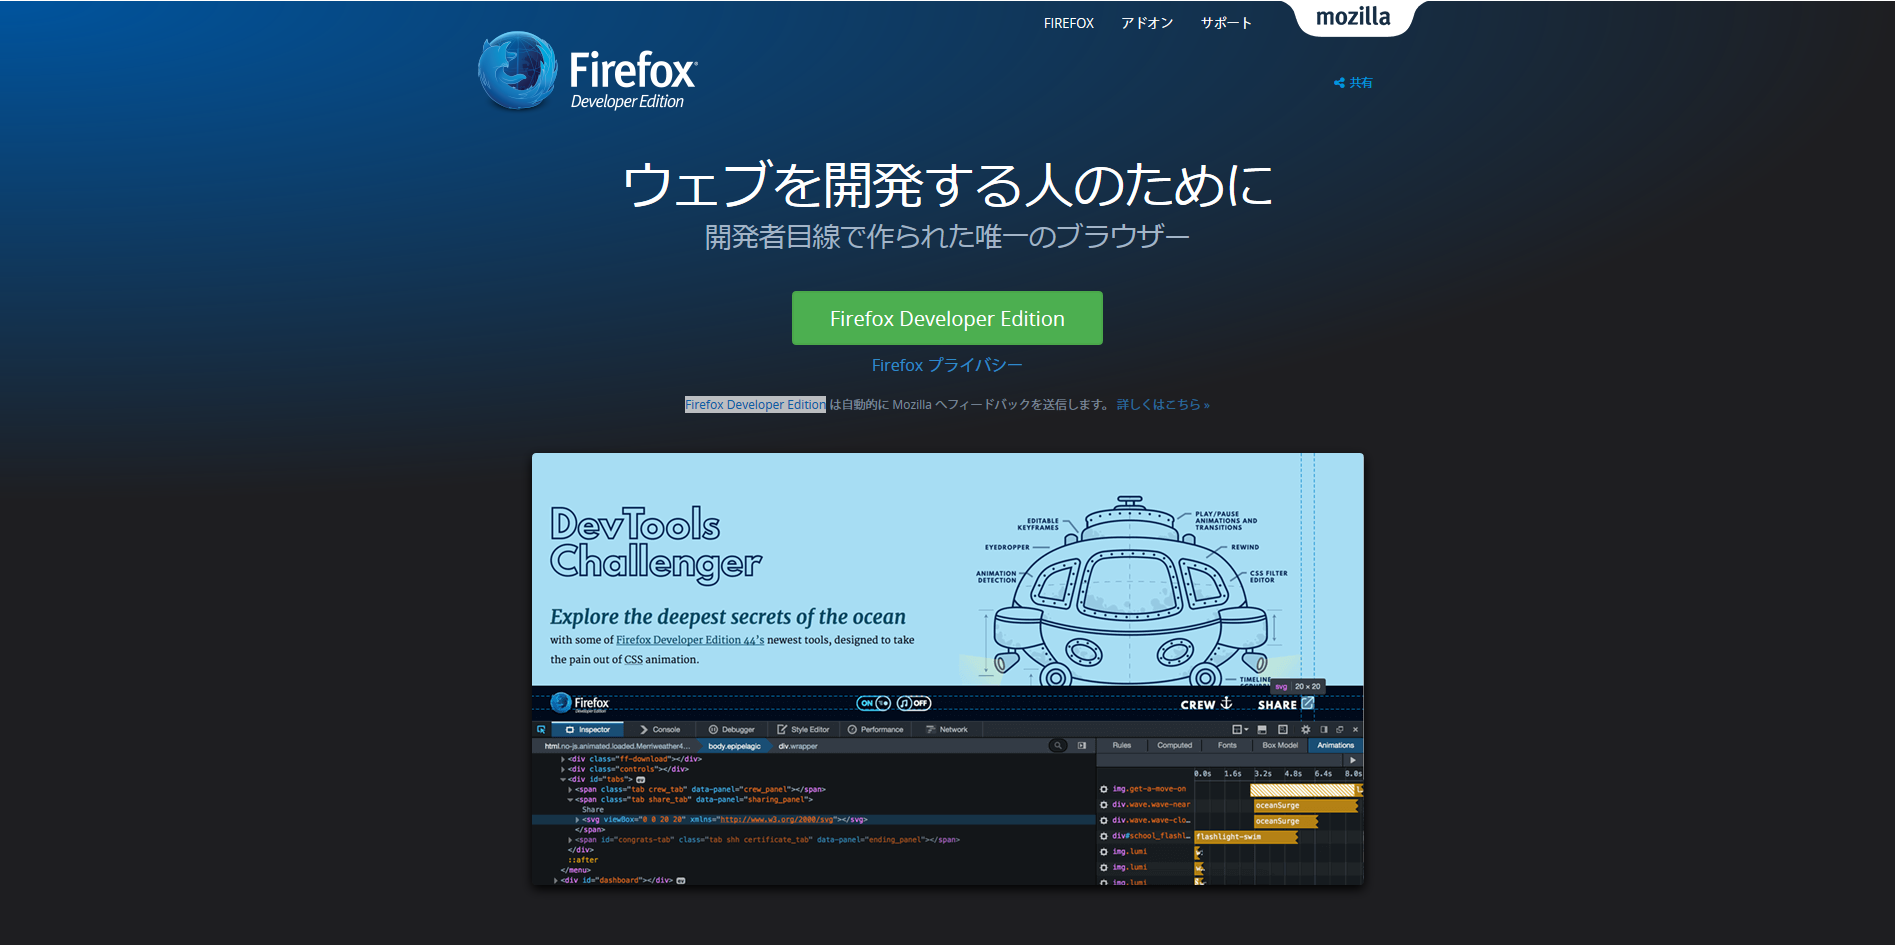 Firefox Developer Editionの画像